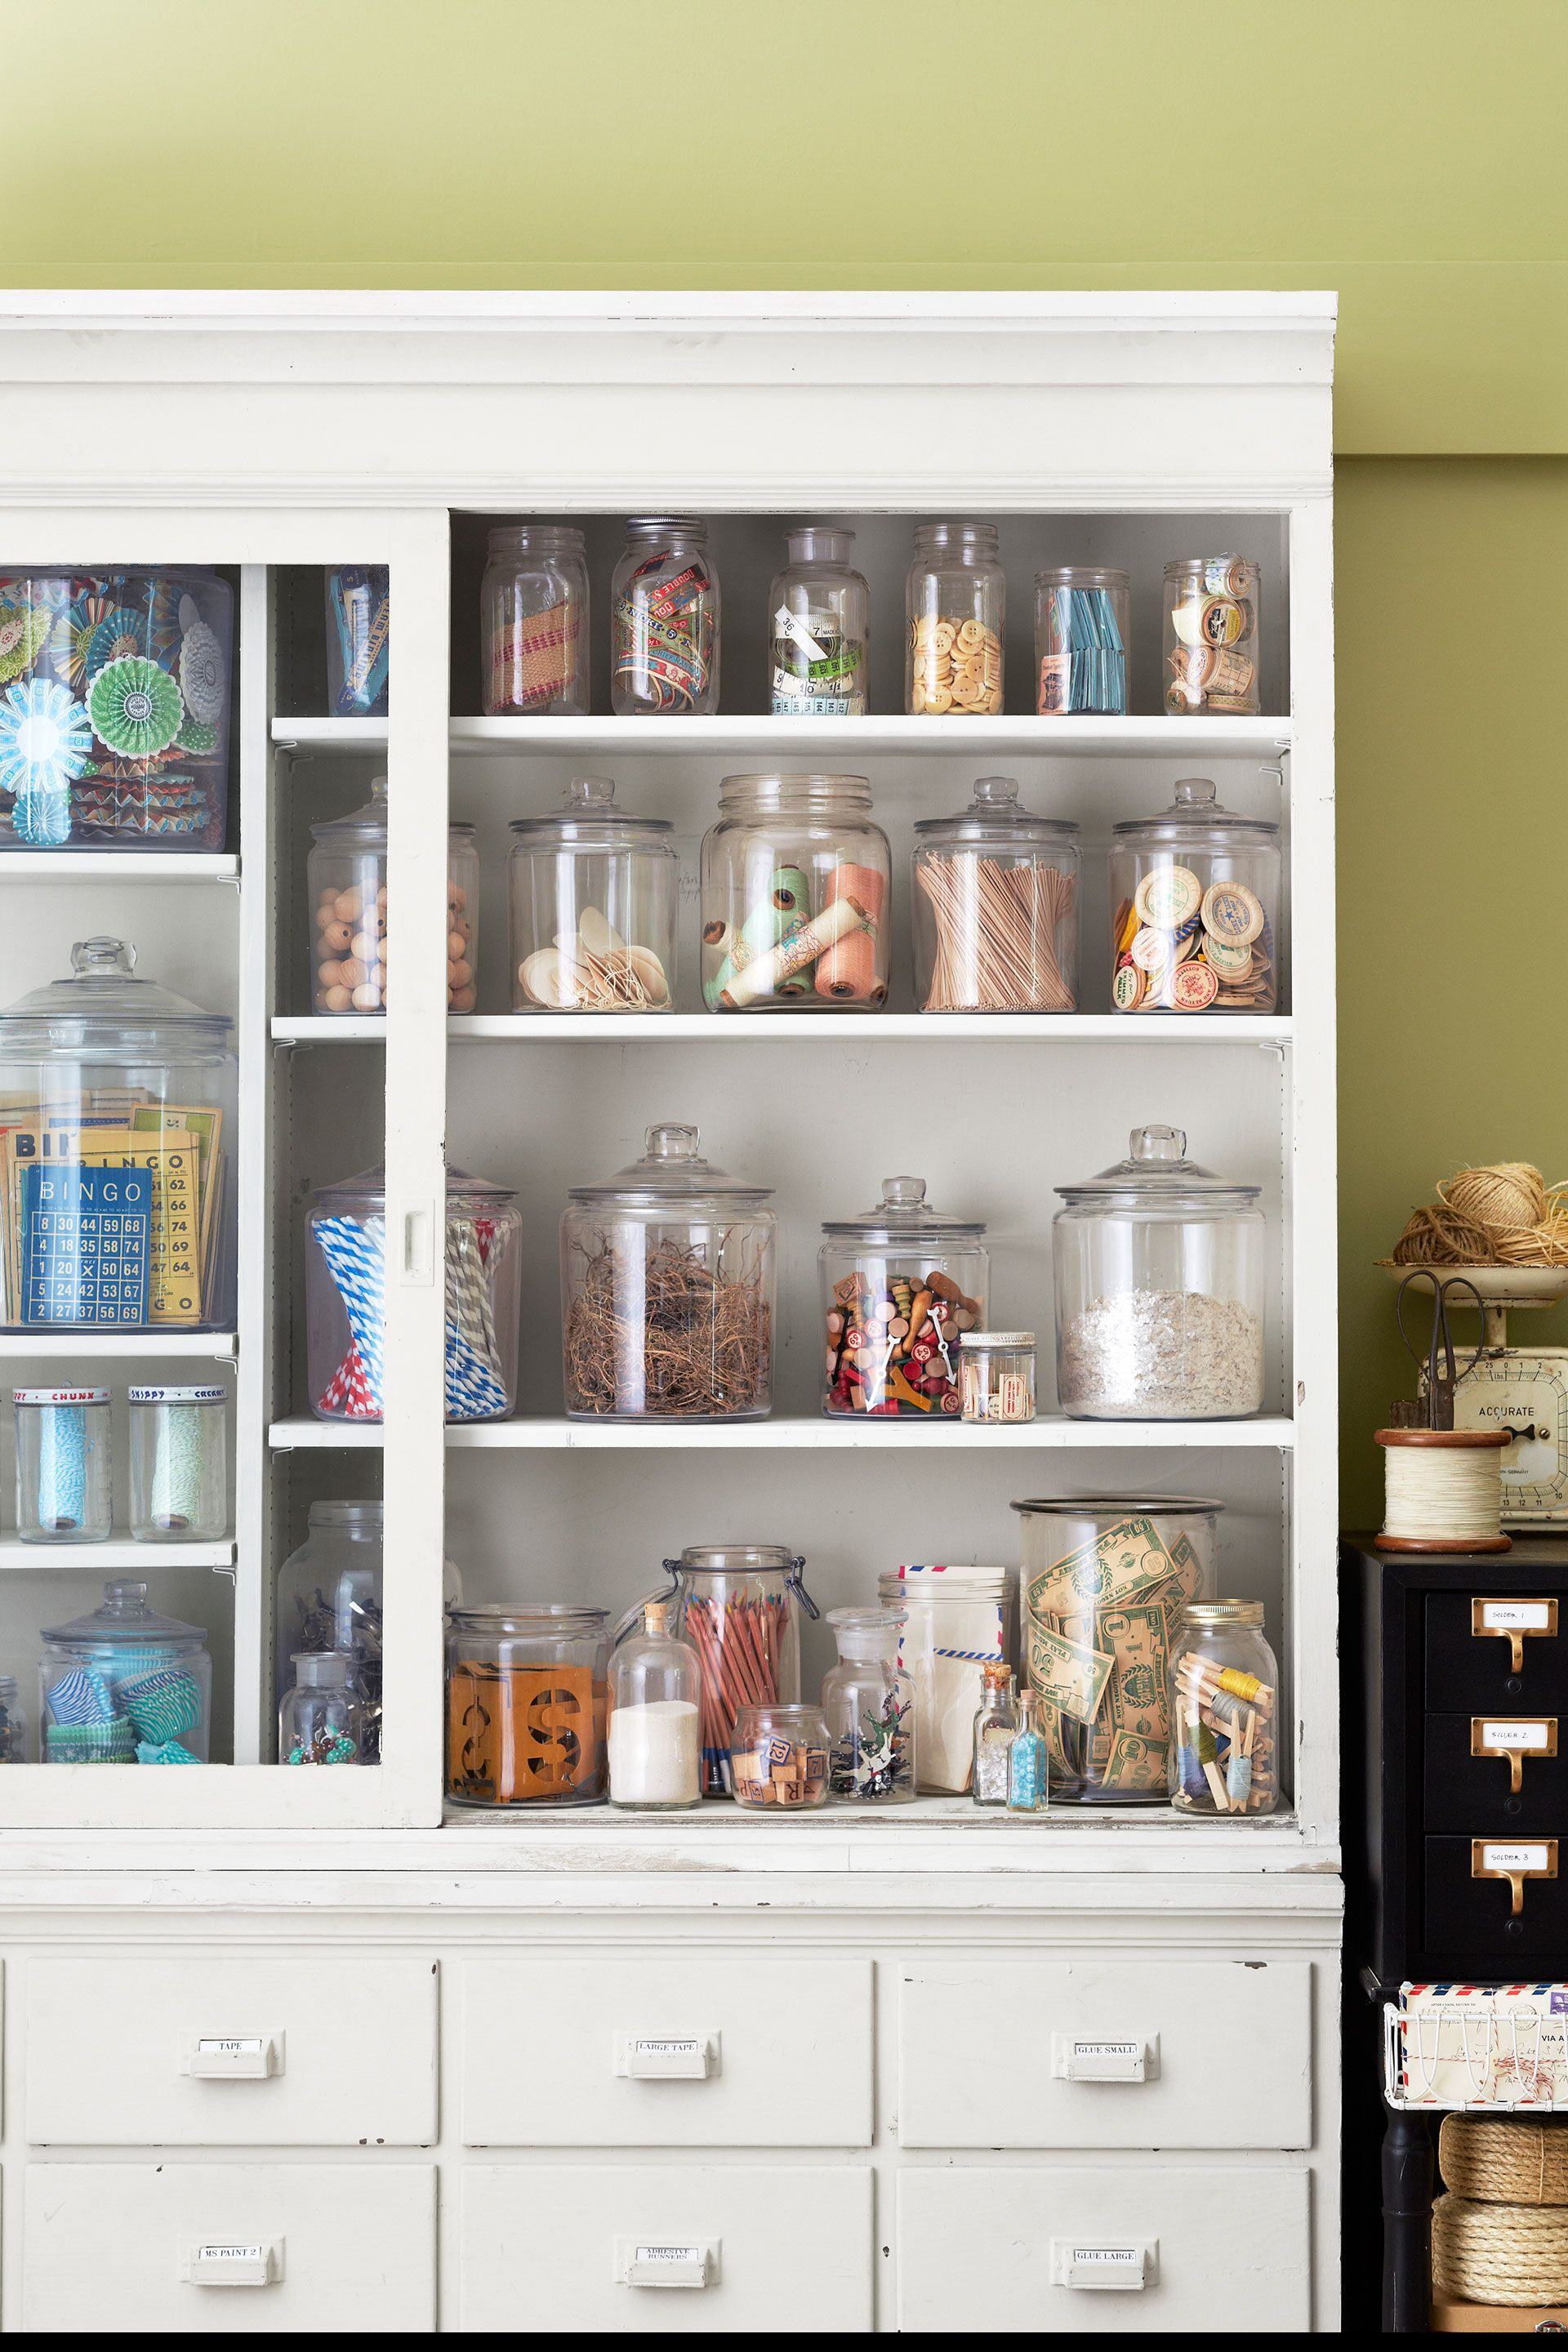 Crafting queen Cathe Holden uses an antique nine-foot-high apothecary cabinet to store her crafting supplies. But to curb chaos, Holden groups items together in an assortment of new and vintage glass jars. See more of Cathe's craft room makeover ideas. - CountryLiving.com